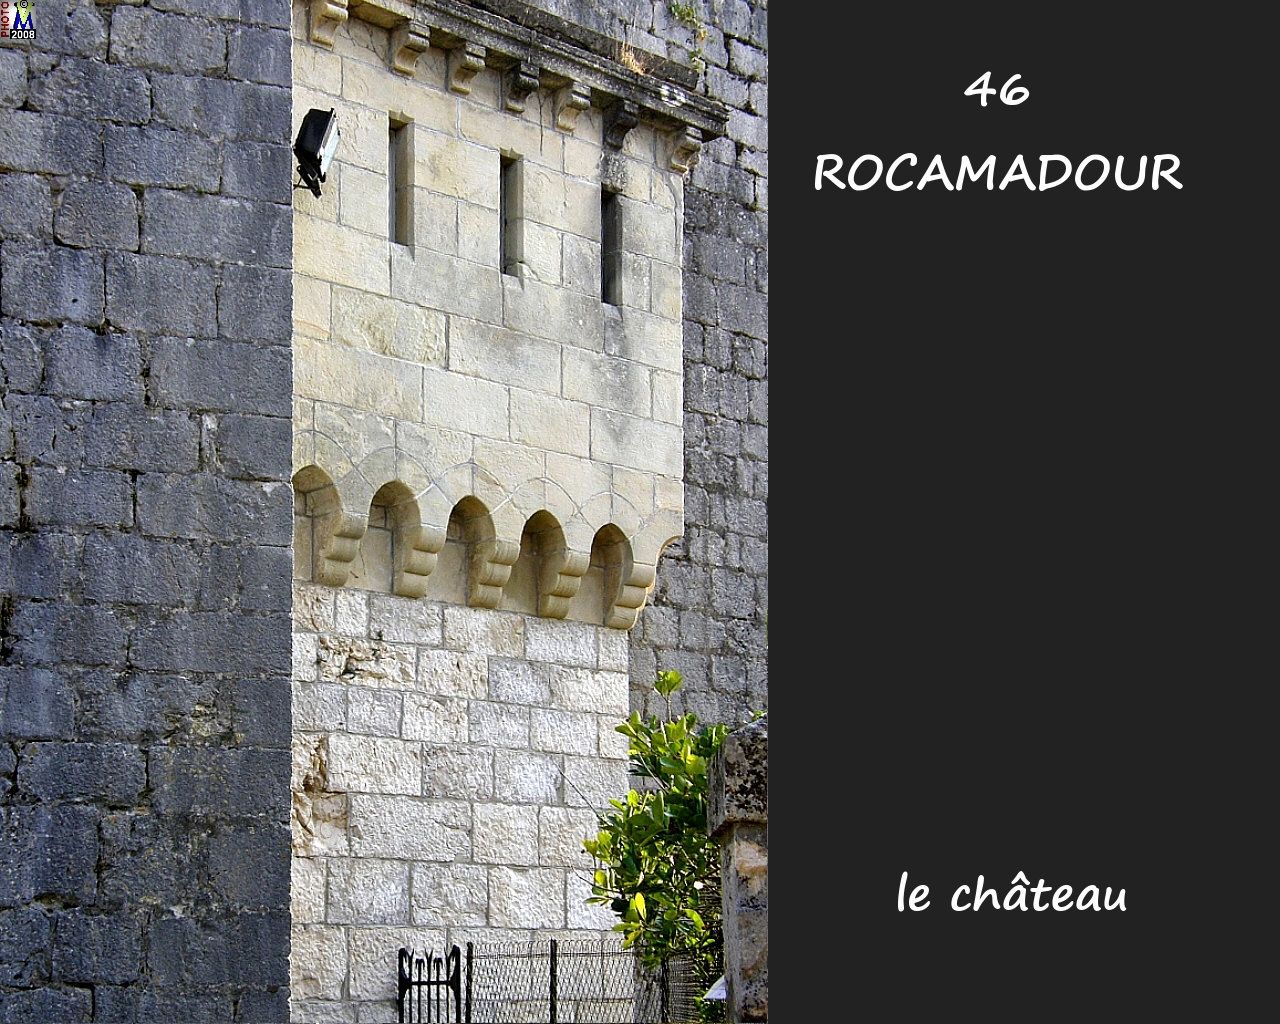 46ROCAMADOUR_chateau_122.jpg